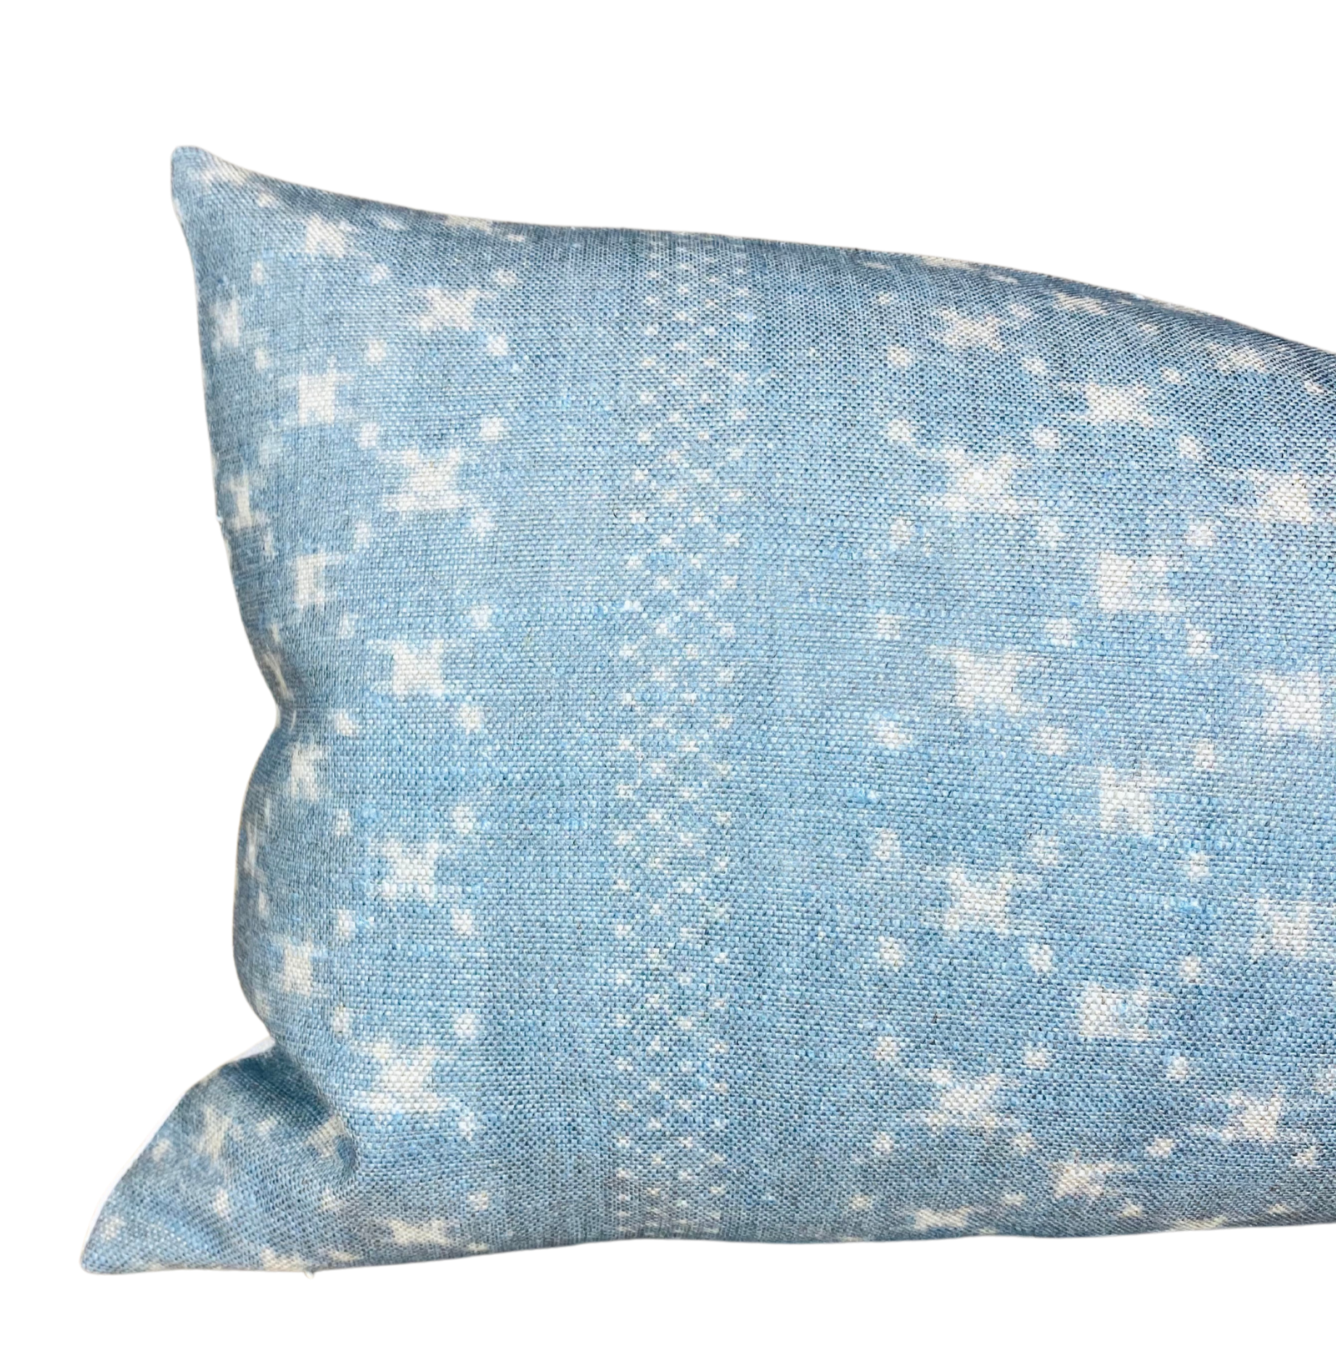 Clay McLaurin Nagoya Pillow Cover in Azure